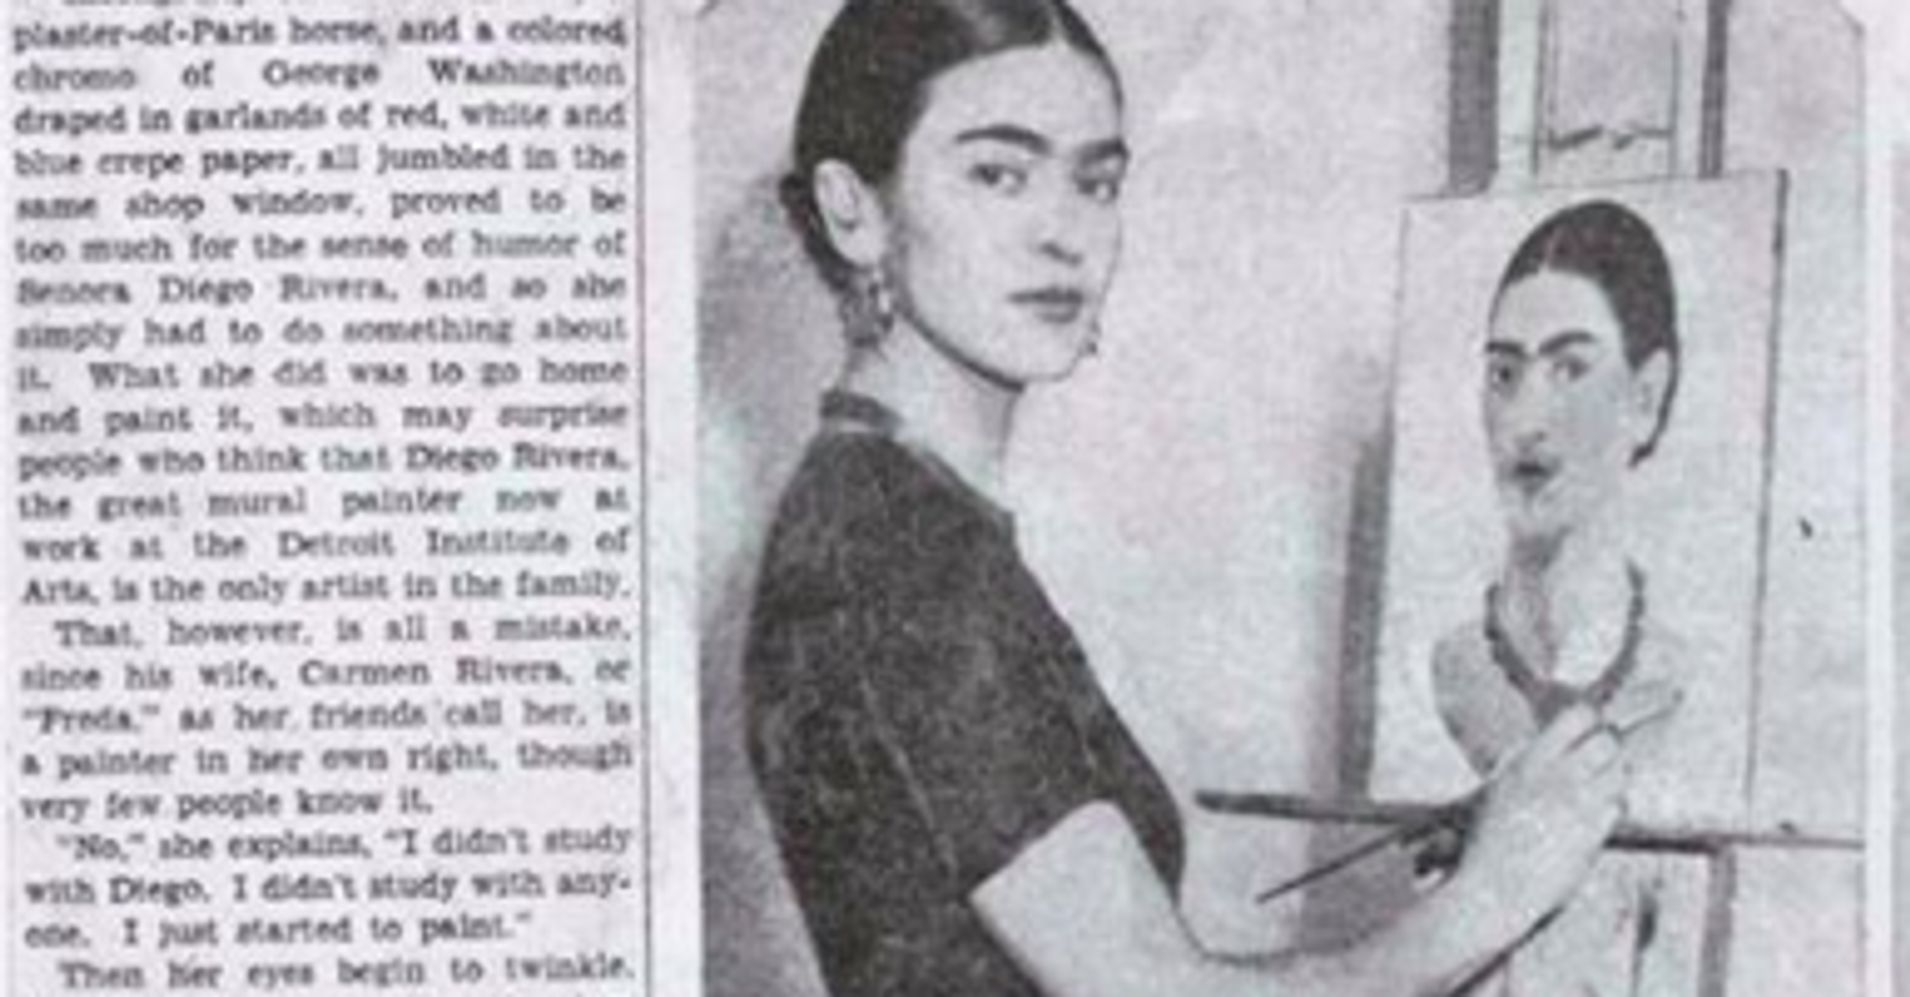 This Sexist 1930s Article About Frida Kahlo, AKA Senora